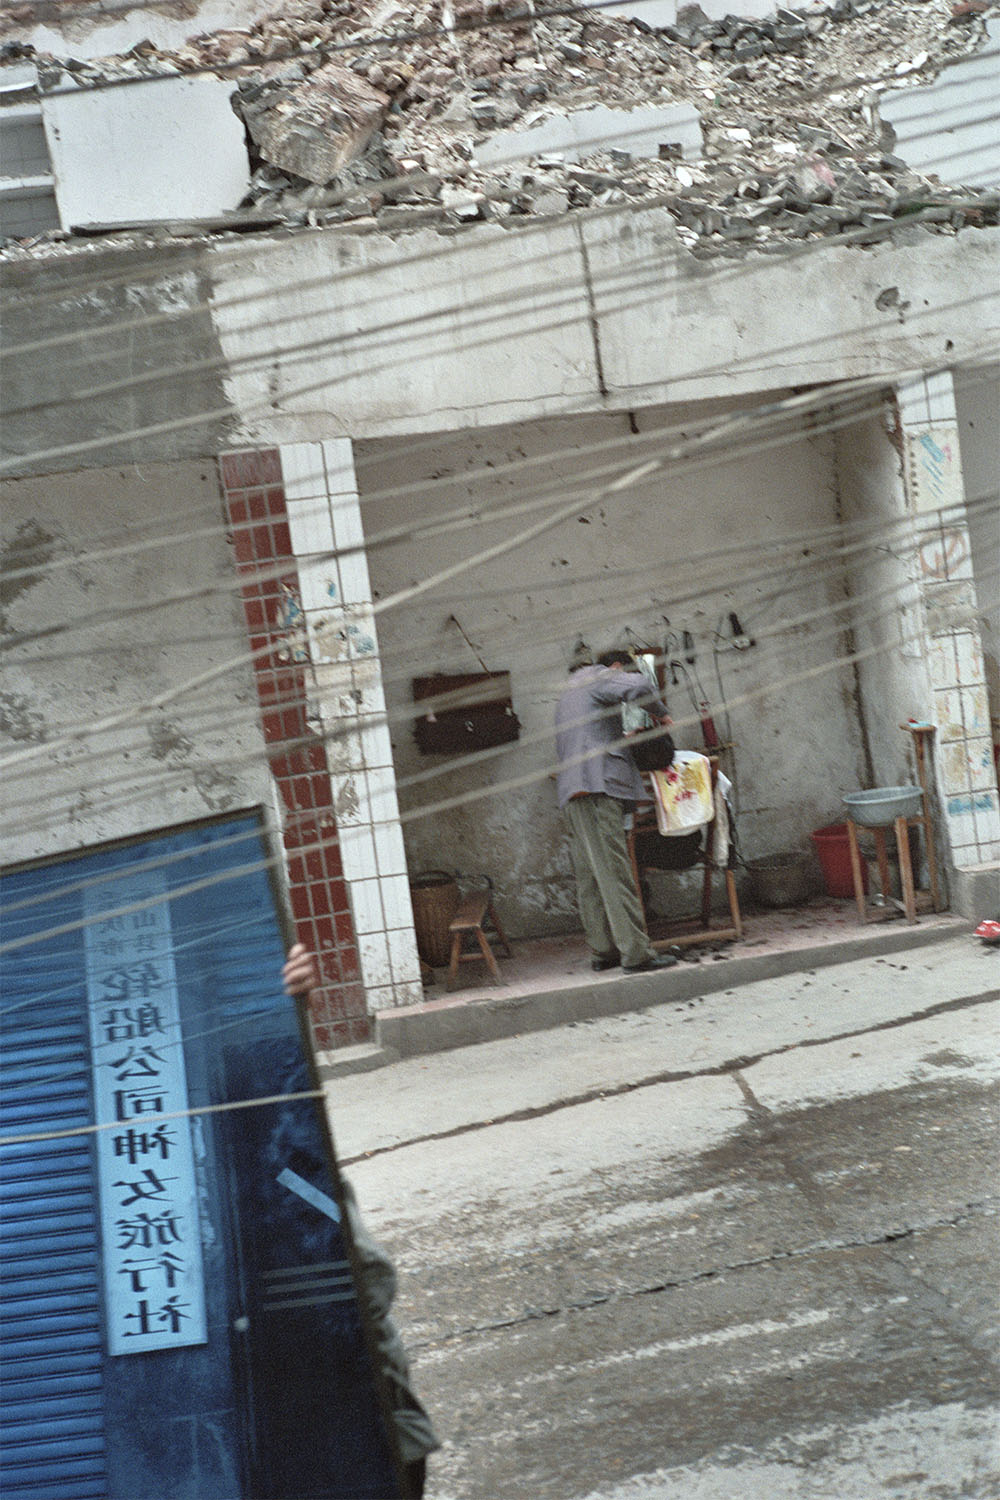 One of the last remaining inhabitants, a barber works in a demolished high-rise building where only the ground floor remains intact. In the foreground, a laborer walks past carrying a mirror salvaged from a building soon to be demolished. Wushan, China. 2002.